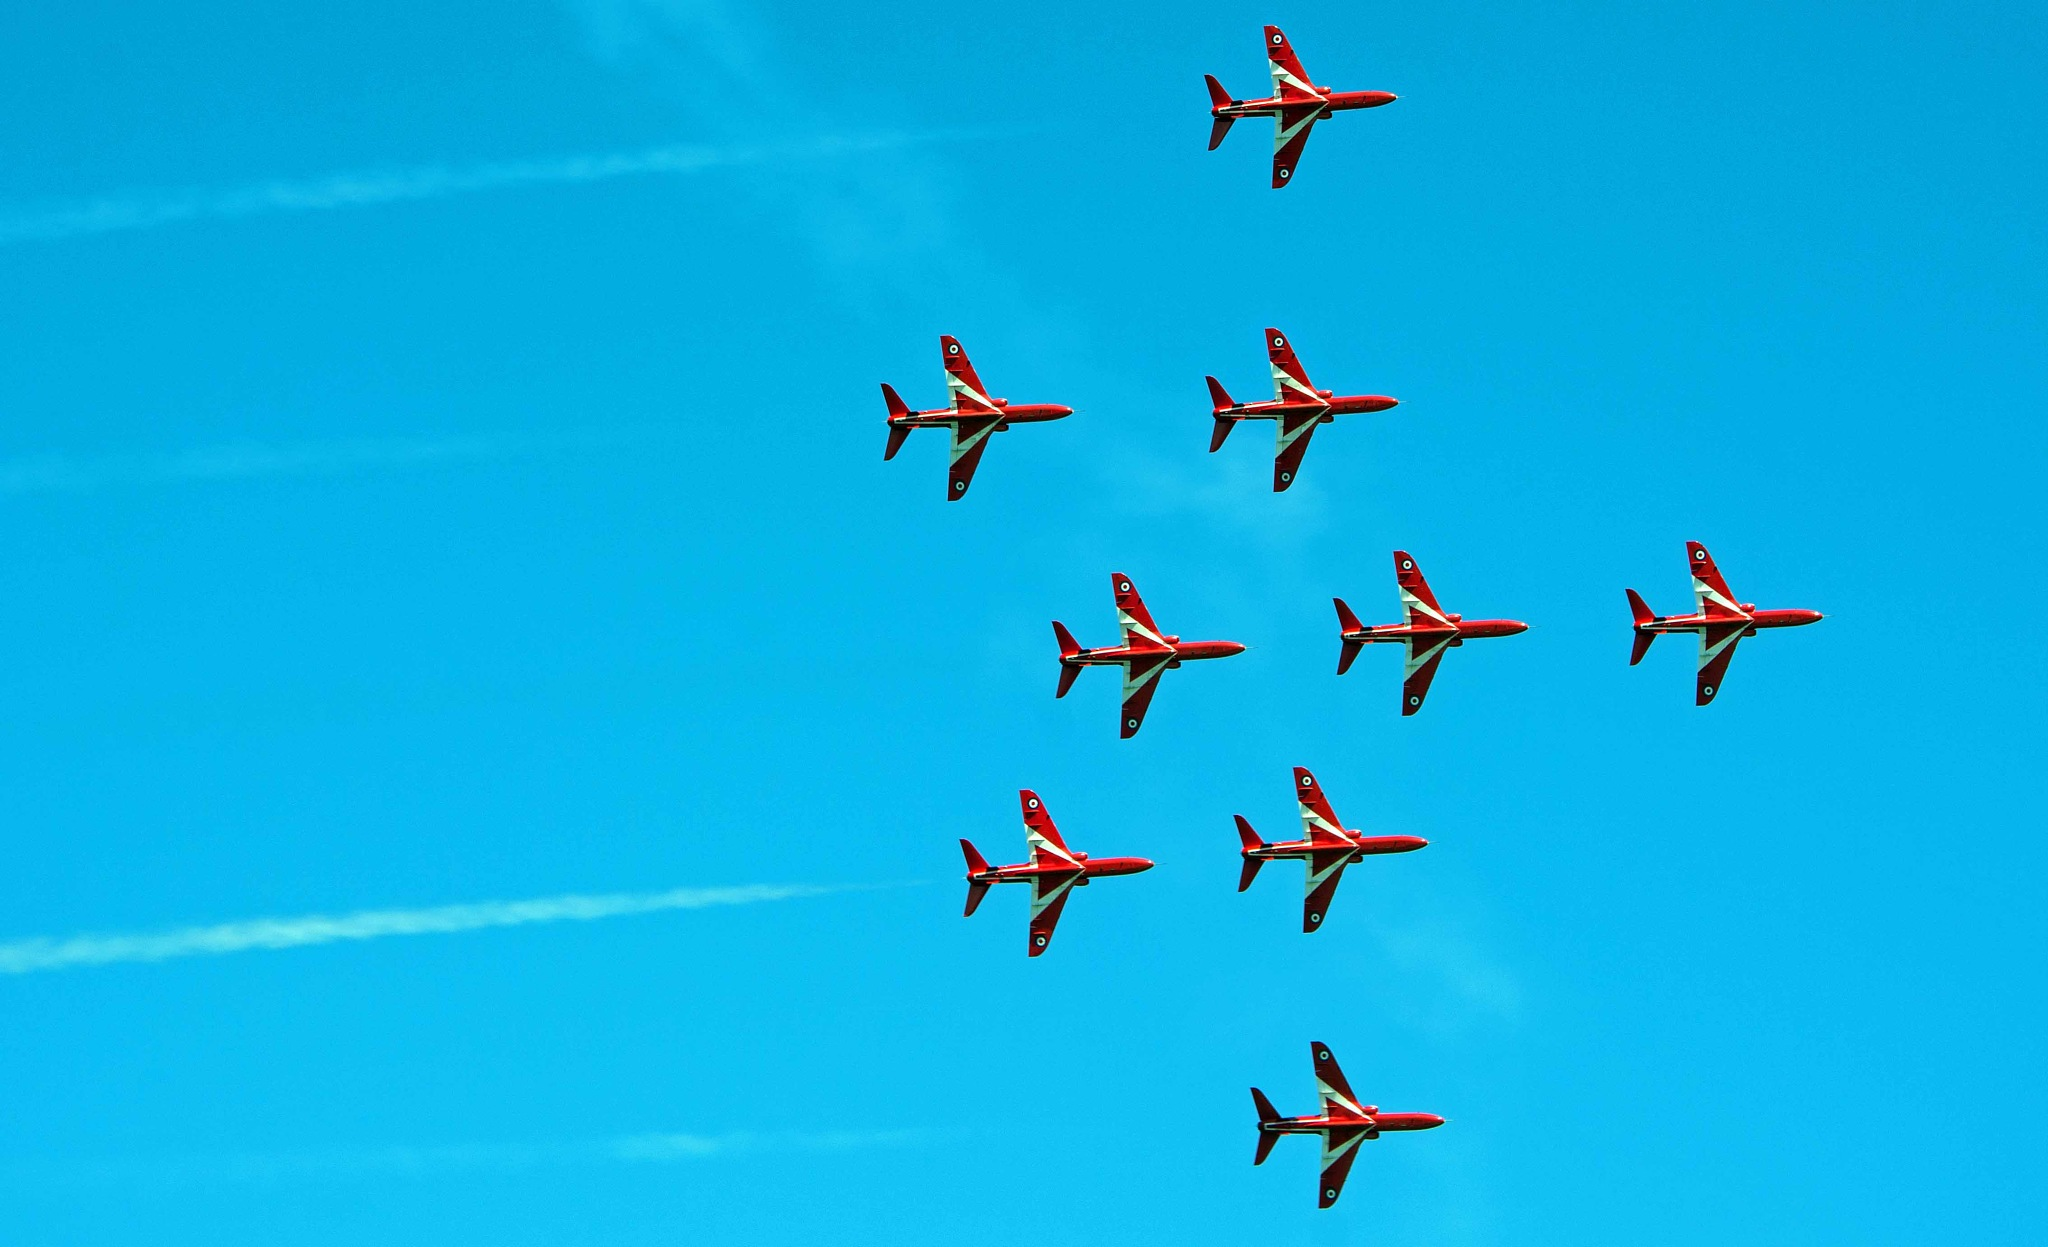 The red Arrows at Armed Forces Day 2018 by ianjck